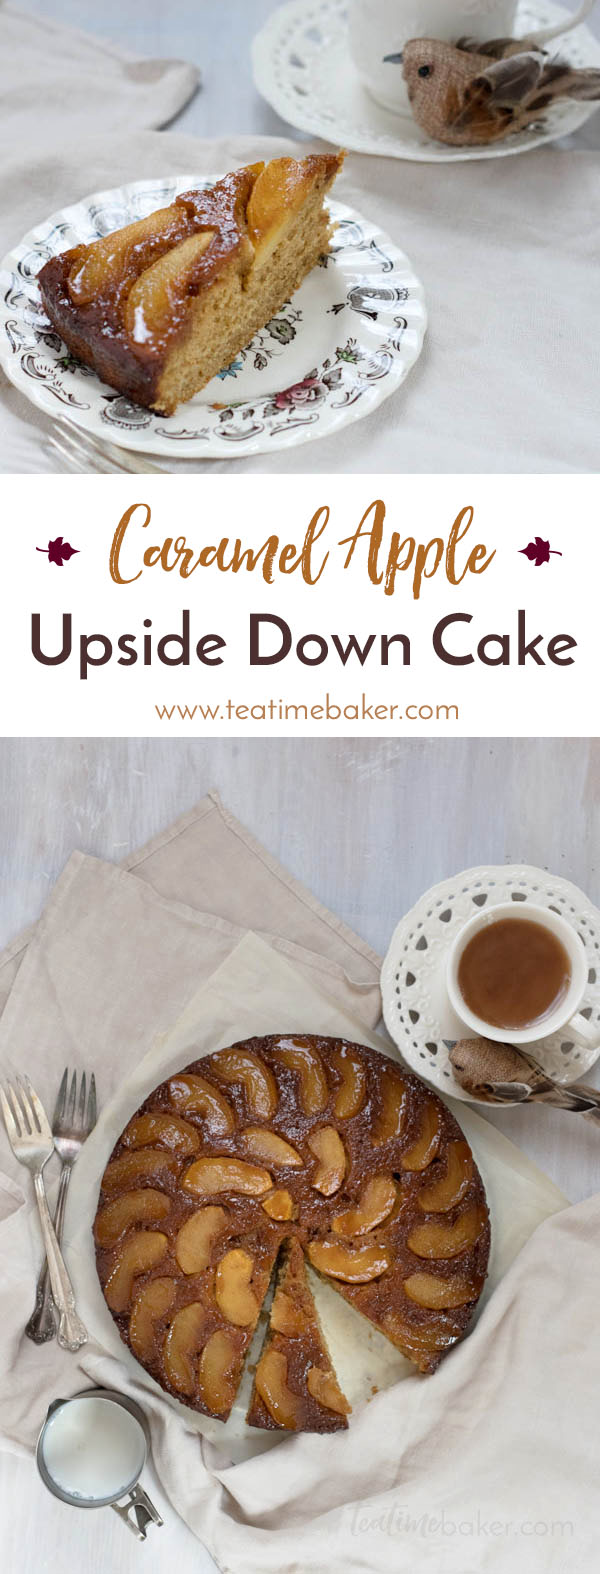 Celebrate fall with a Caramel Apple Upside Down Cake! Fresh apples and homemade cinnamon caramel topped with a soft buttermilk spice cake is the perfect dessert.